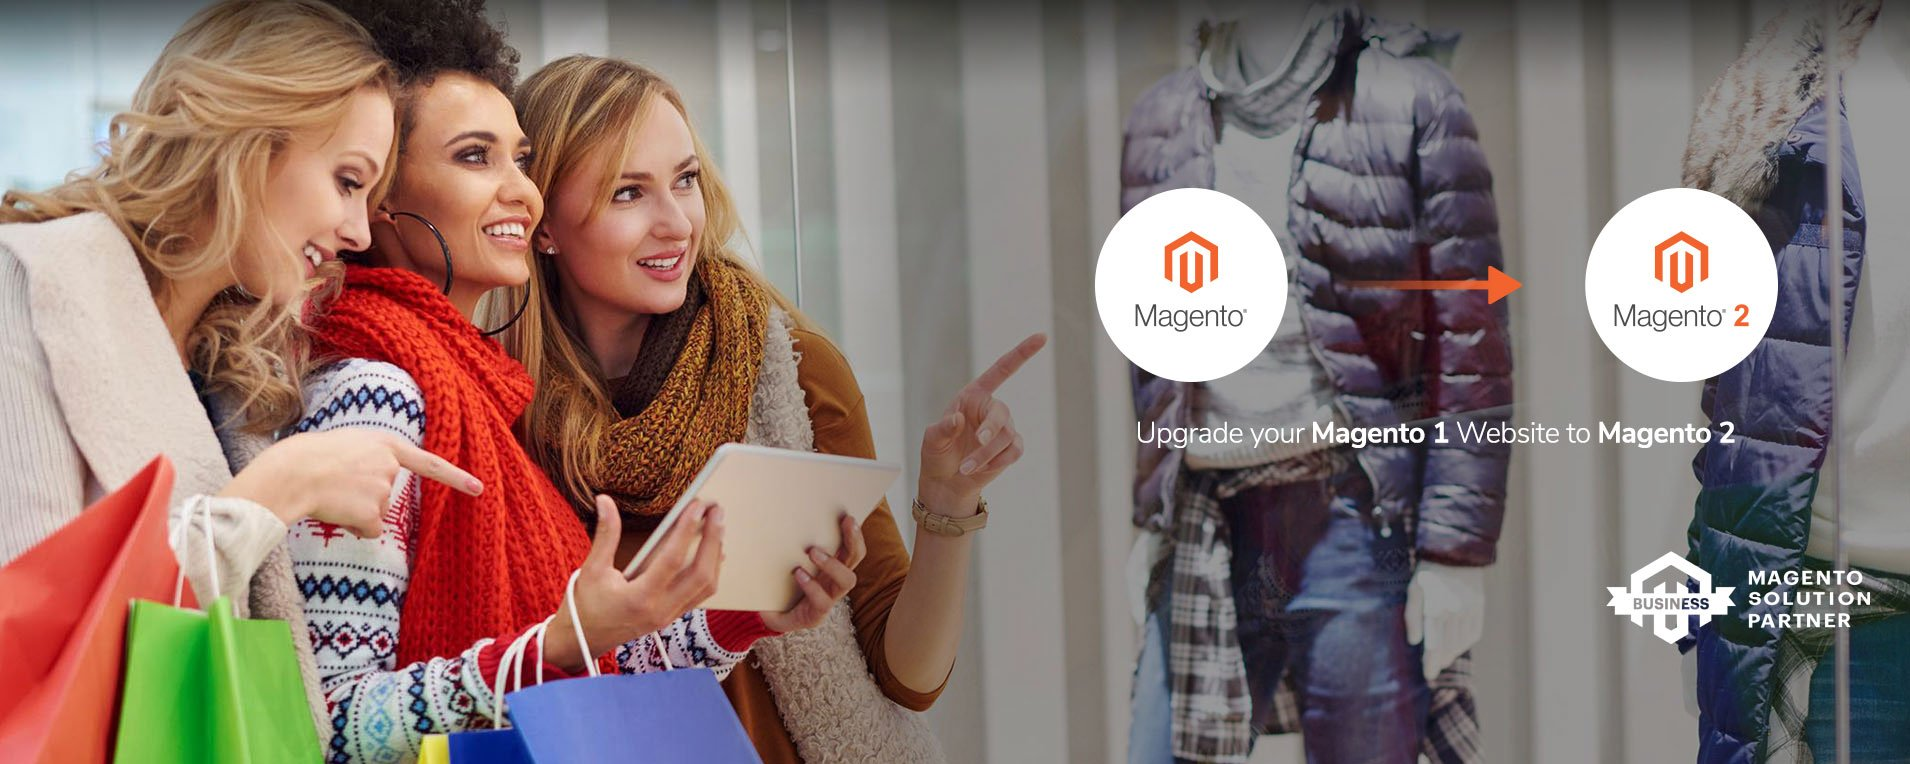 How Long Can I Stay on Magento 1?